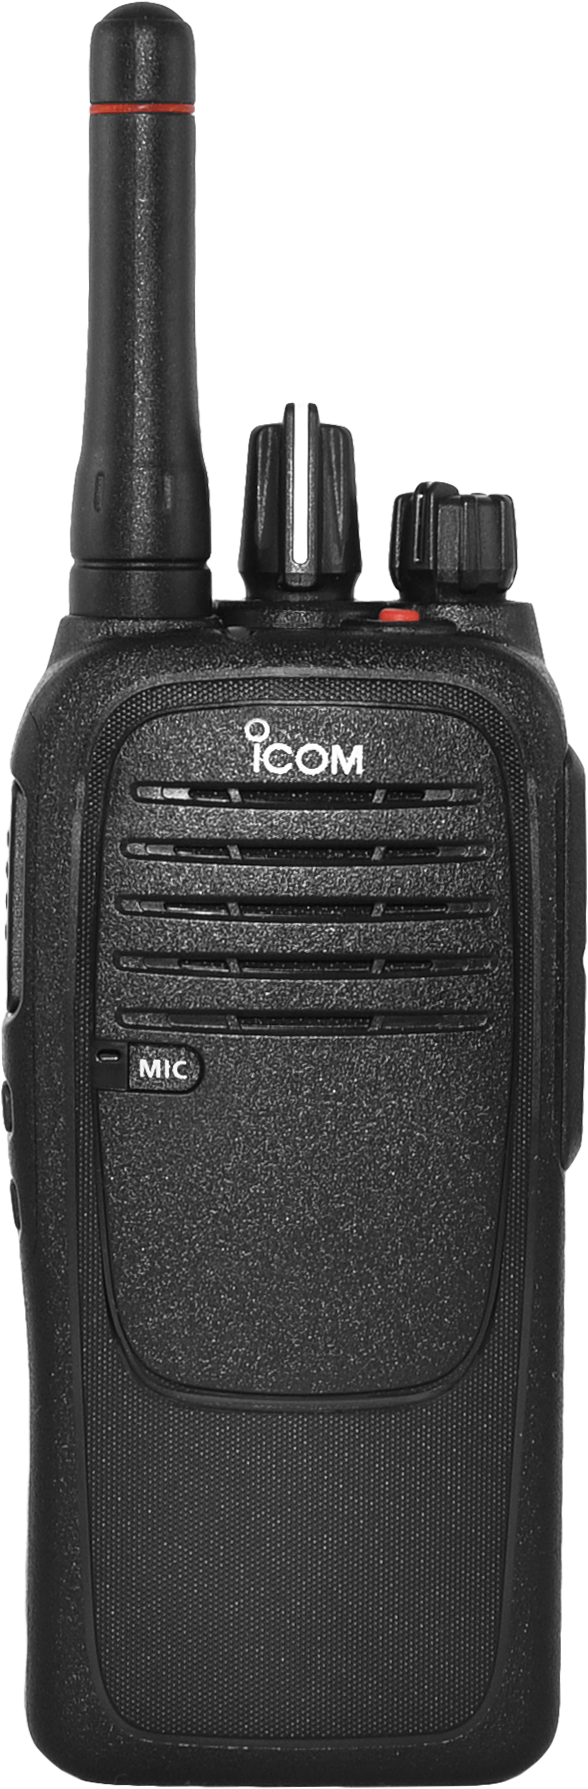 Icom IC-F1000 featured image